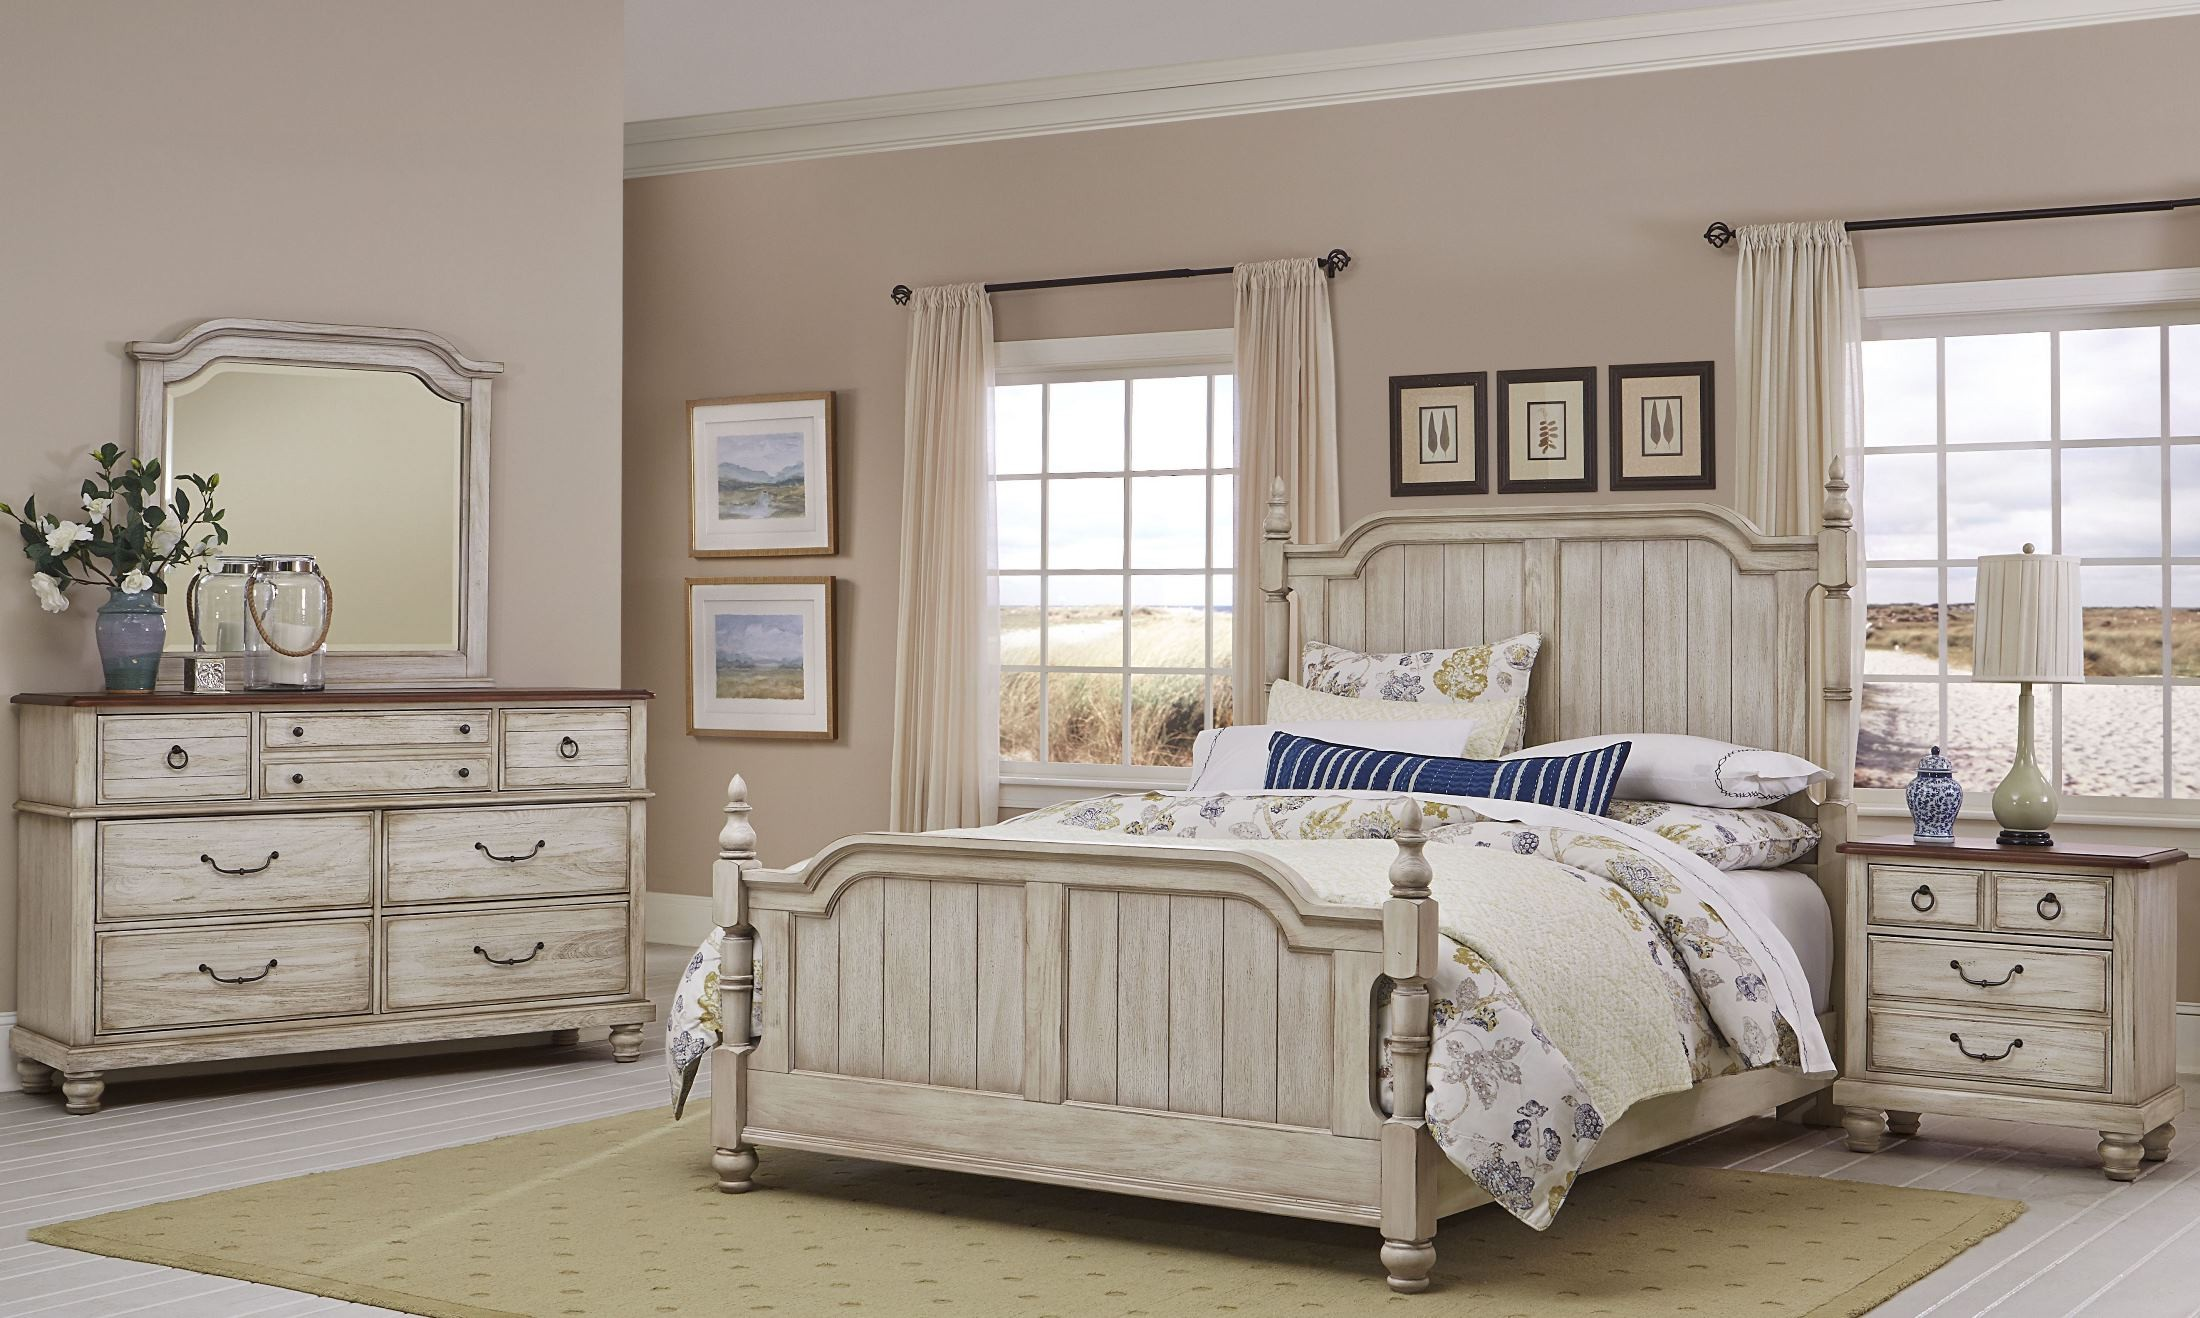 Arrendelle Rustic White And Cherry Poster Bedroom Set 442 559 955 922 Vaugh